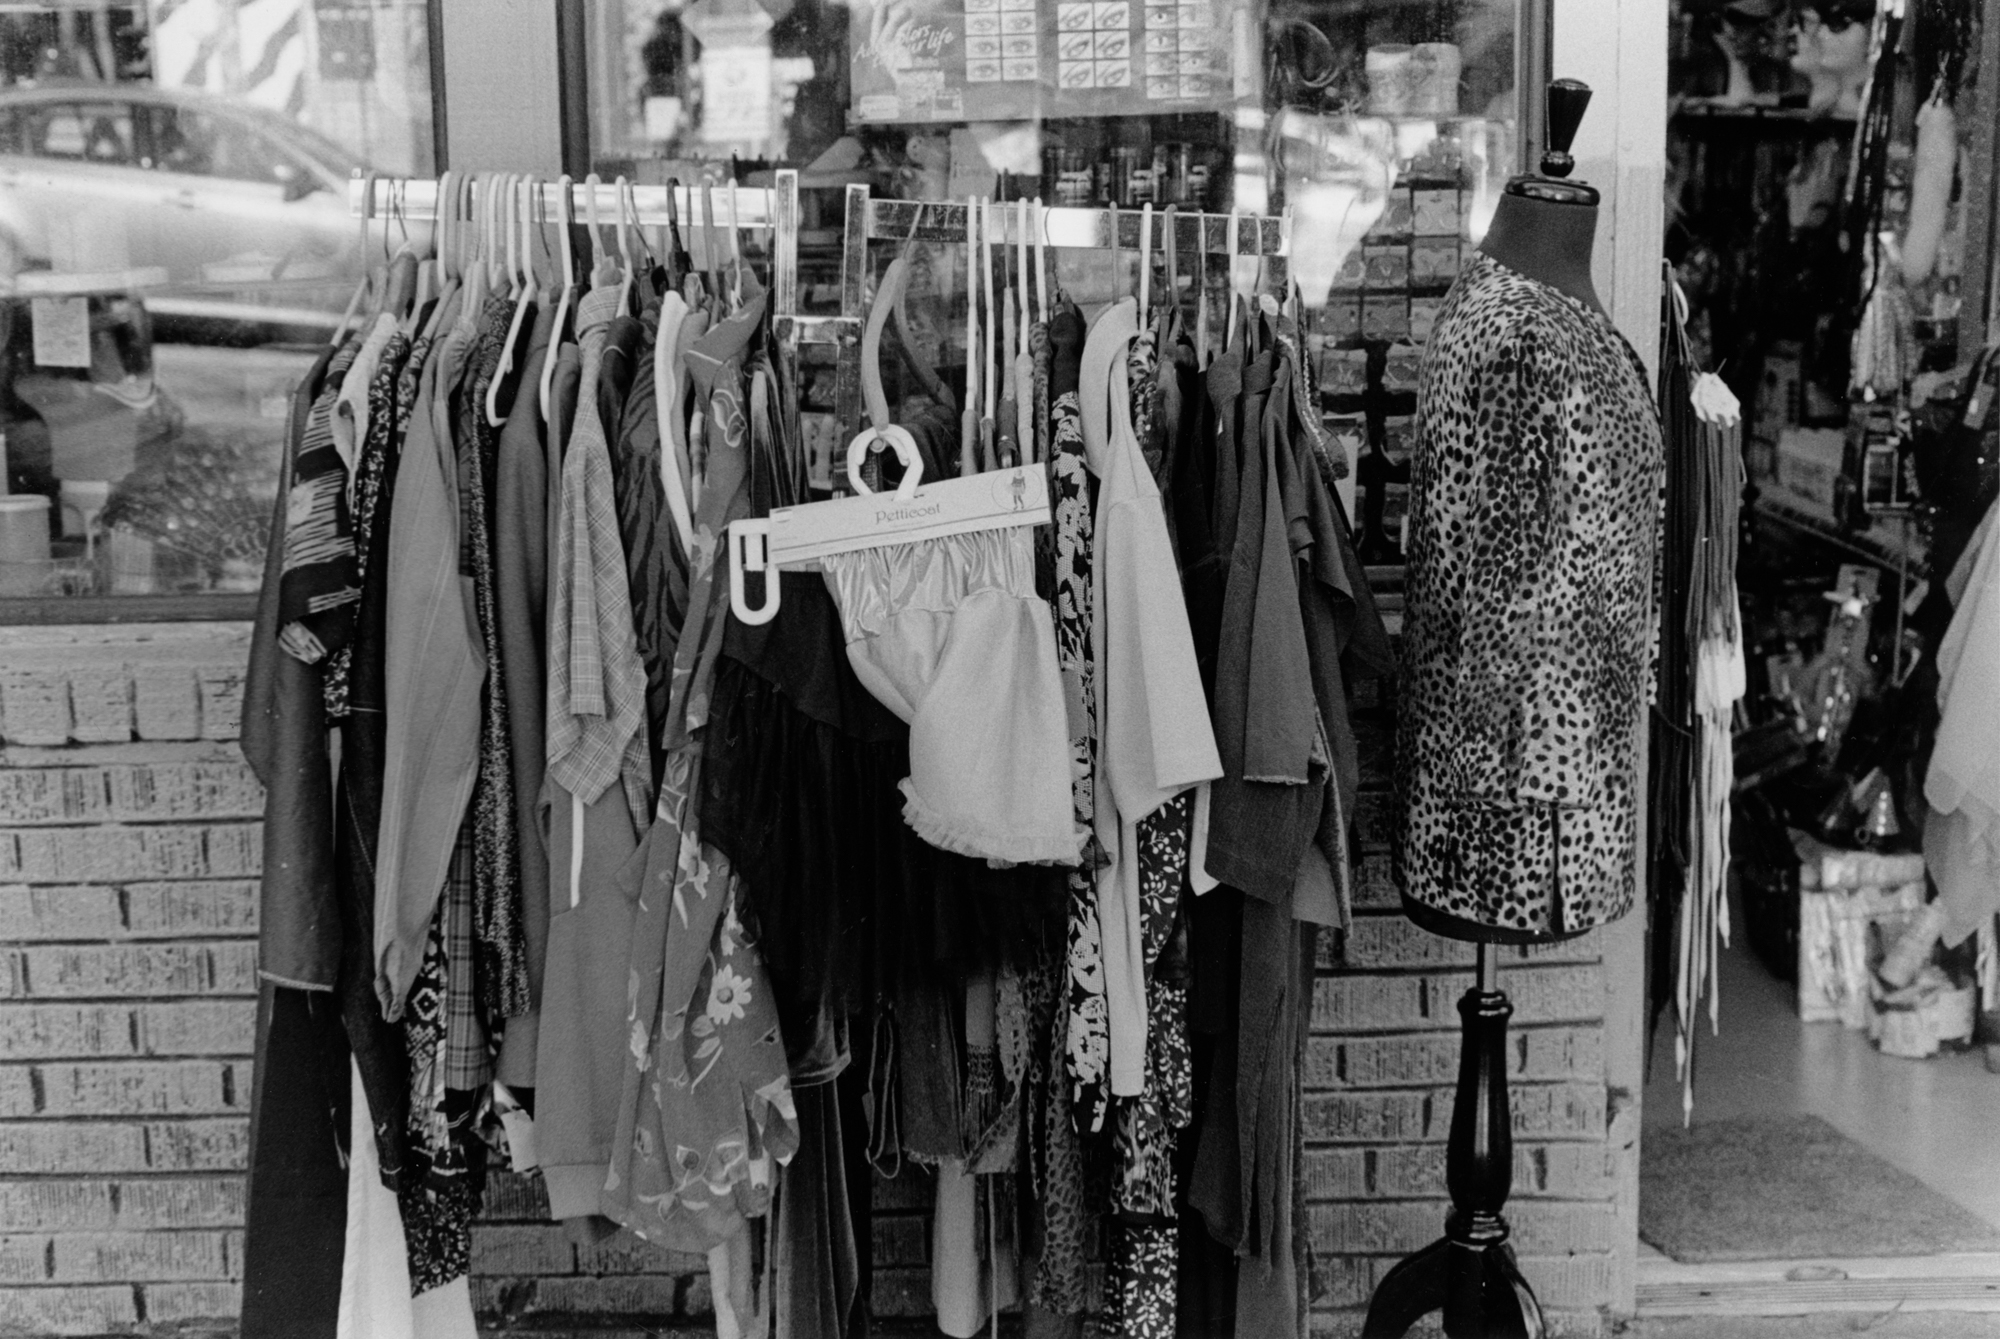 Penelope_Stone-Window_Shopping-17.jpg